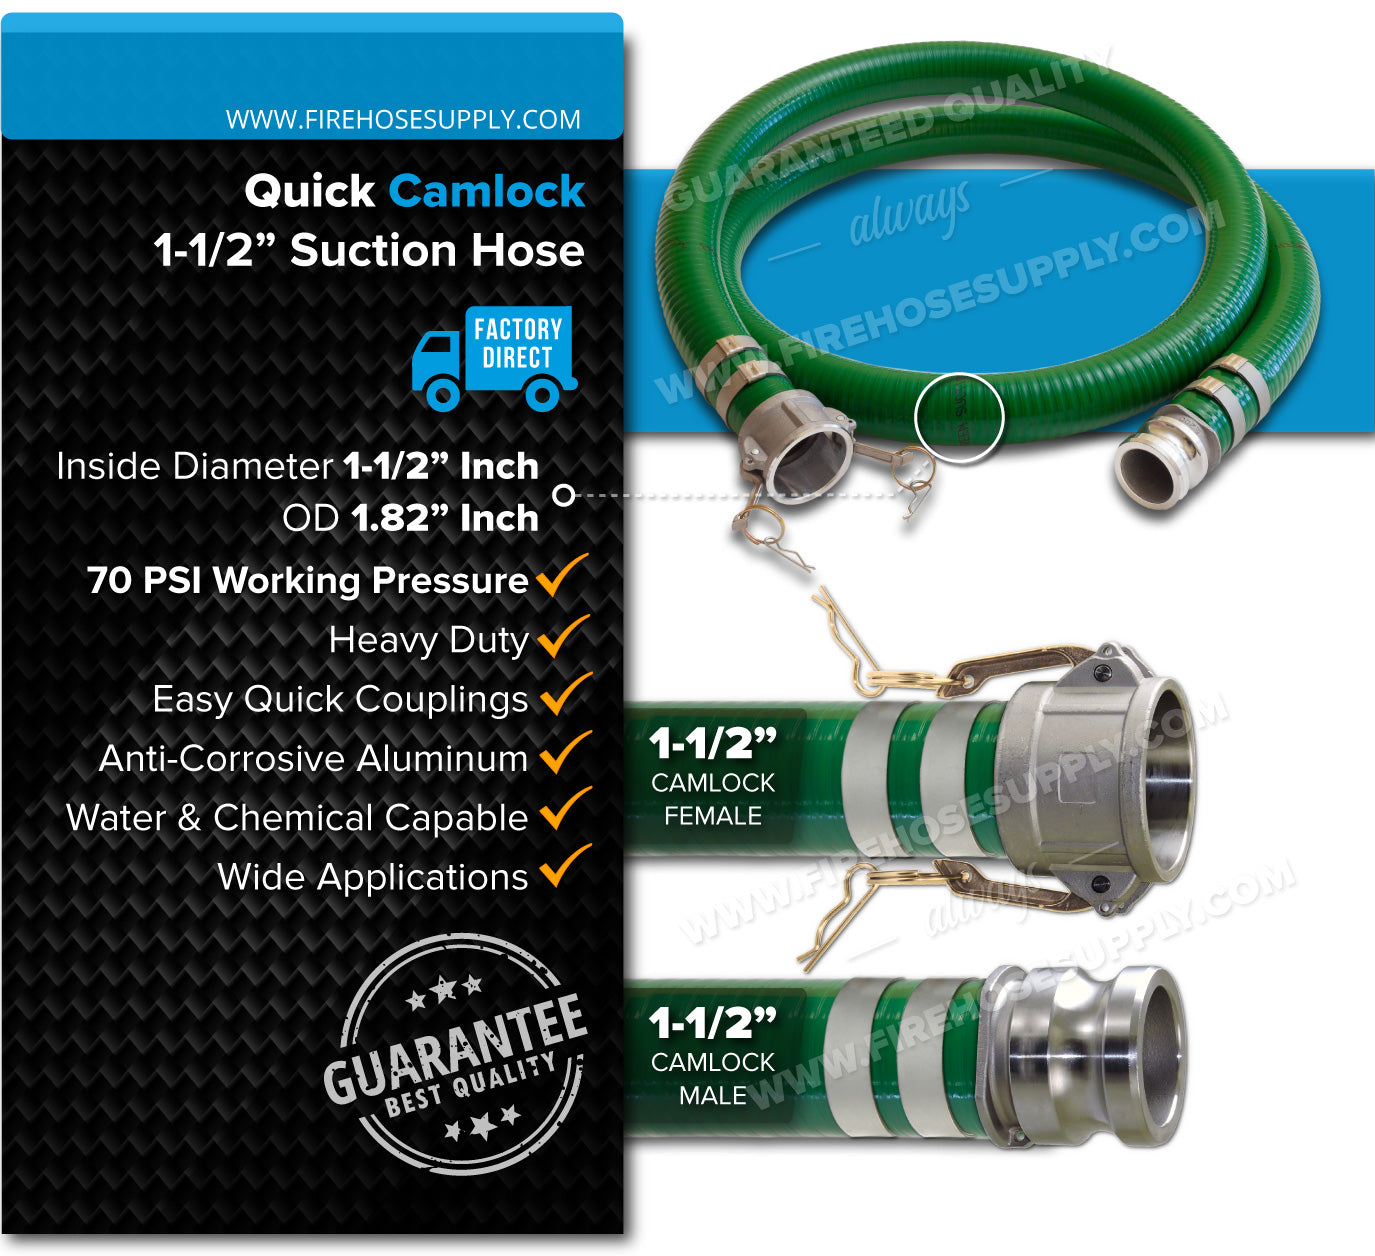 1.5 Inch Camlock Female x Male Green Suction Hose Overview